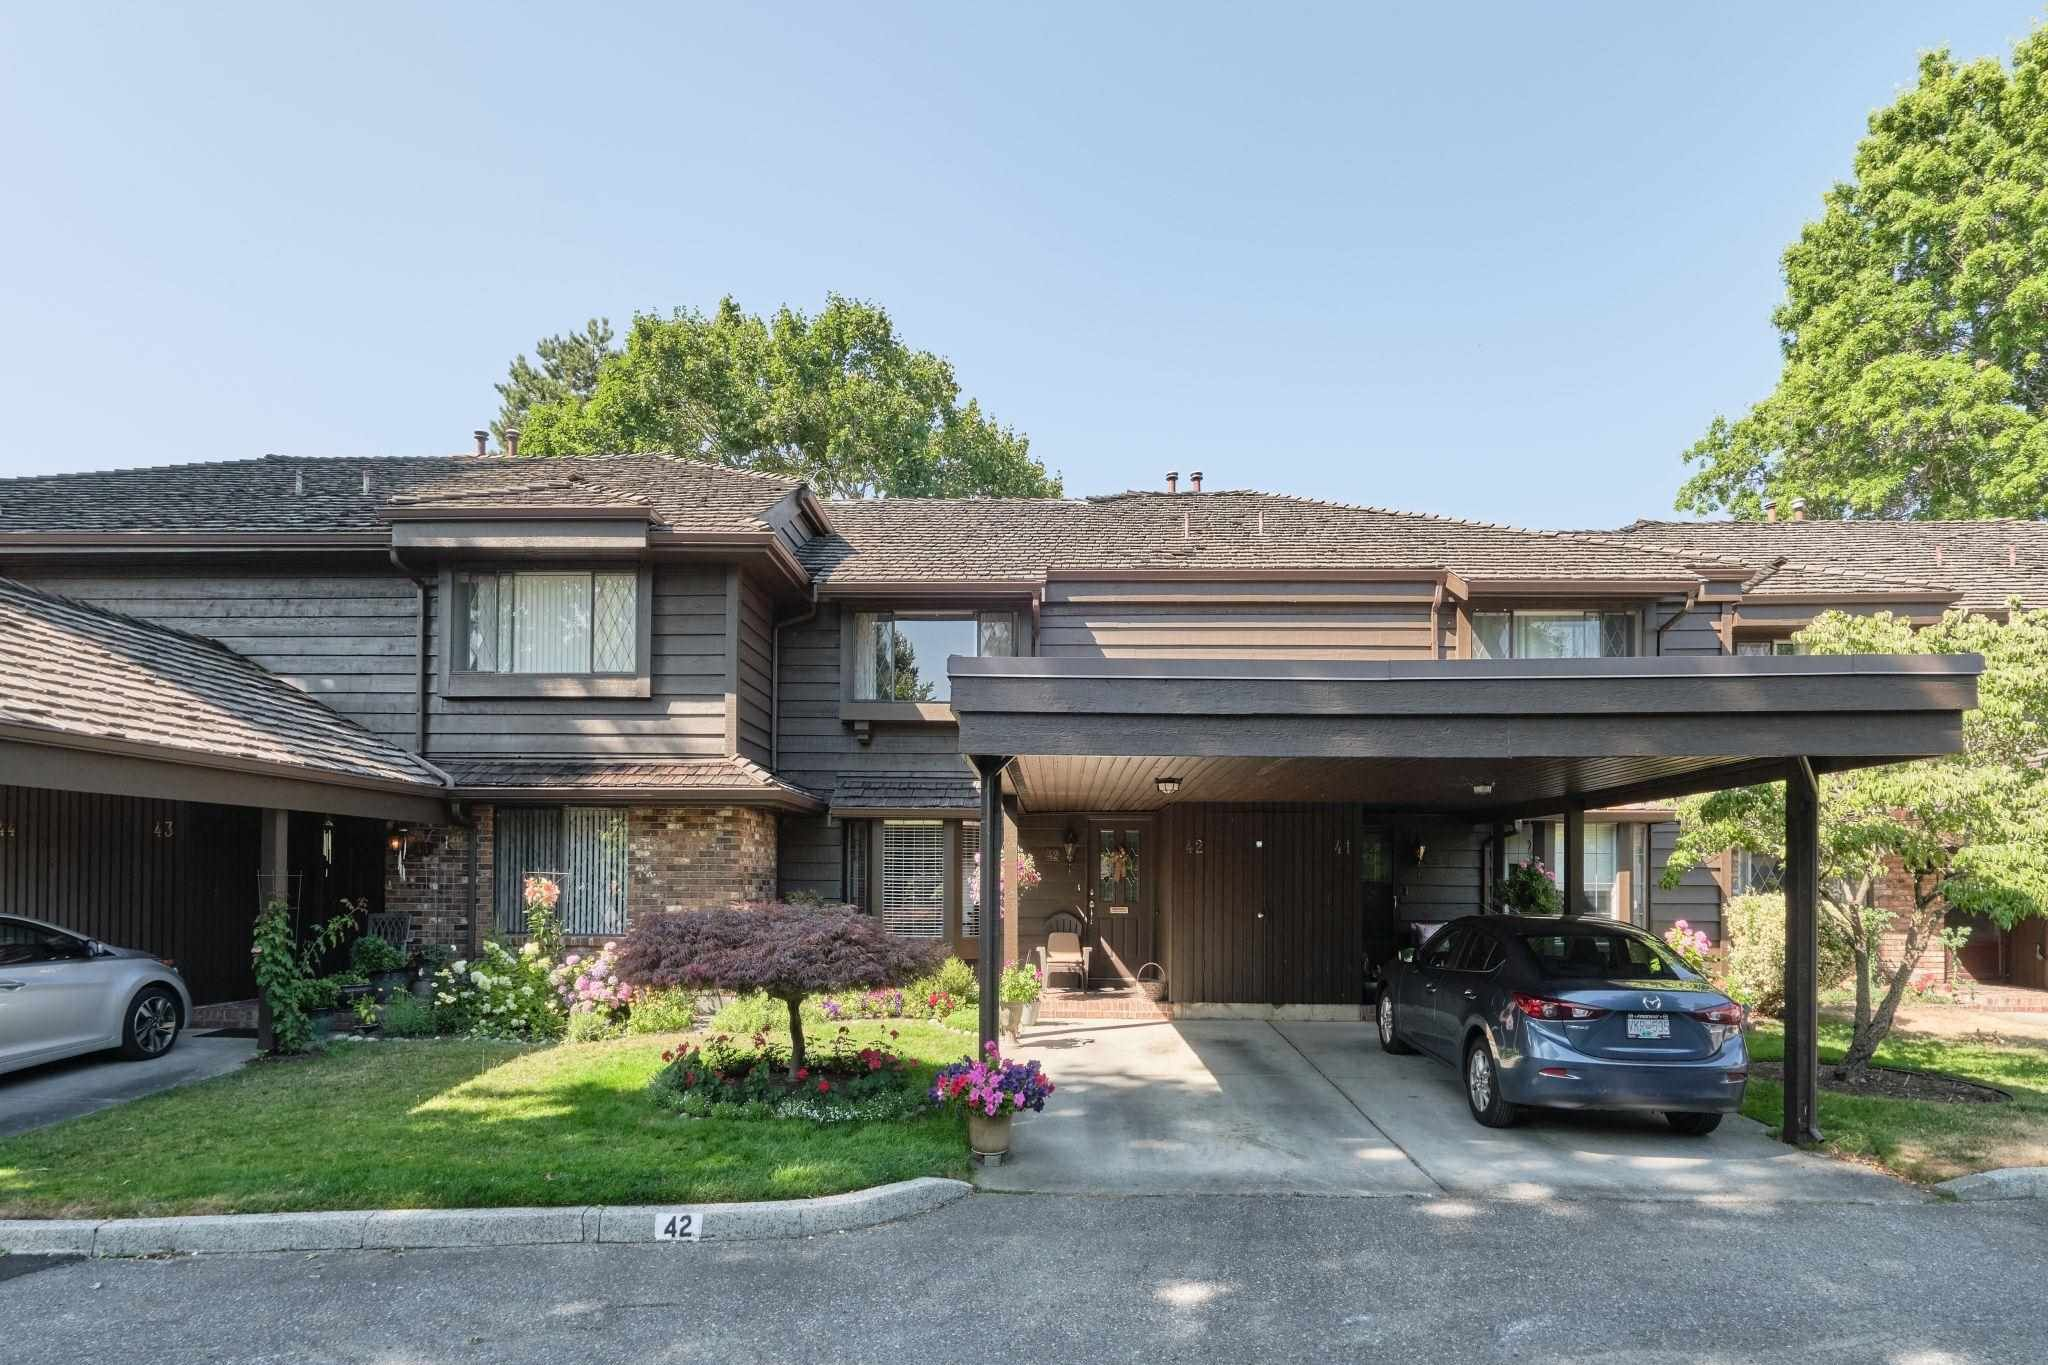 """Main Photo: 42 8111 SAUNDERS Road in Richmond: Saunders Townhouse for sale in """"OSTERLEY PARK"""" : MLS®# R2605731"""